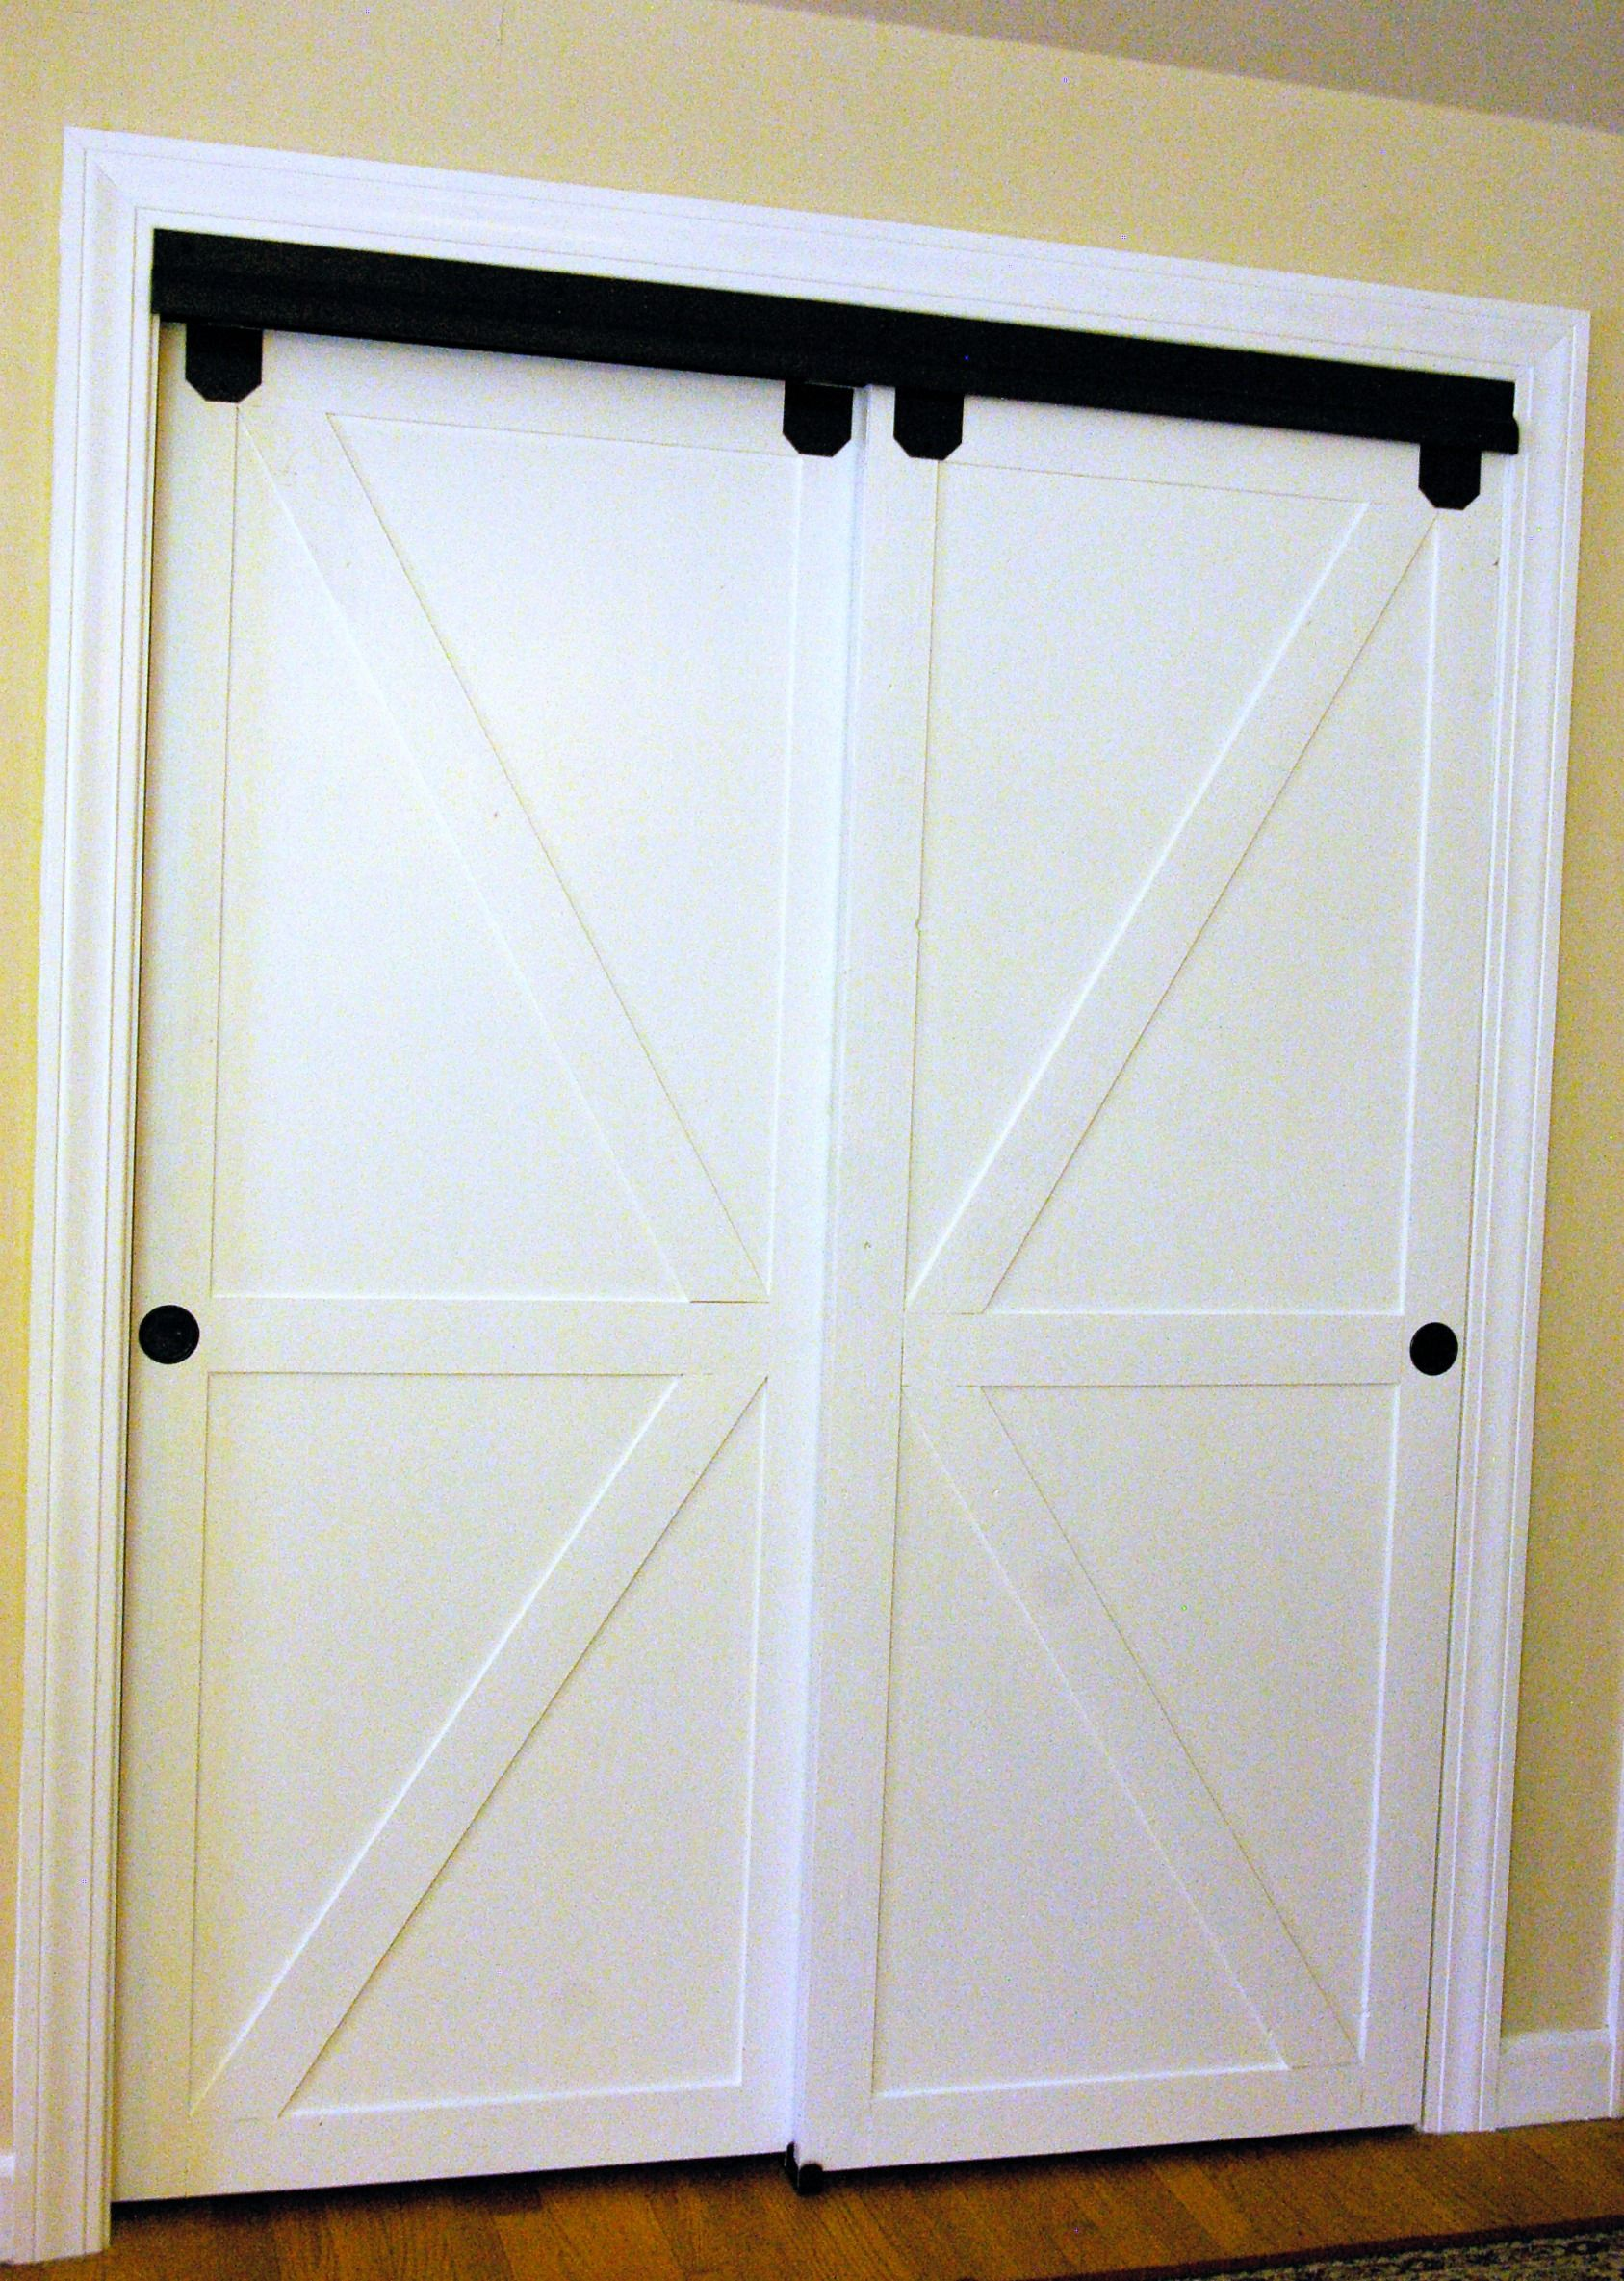 I love what she did to her closet doors to make them blend in with the room  #slidingclosetdoors